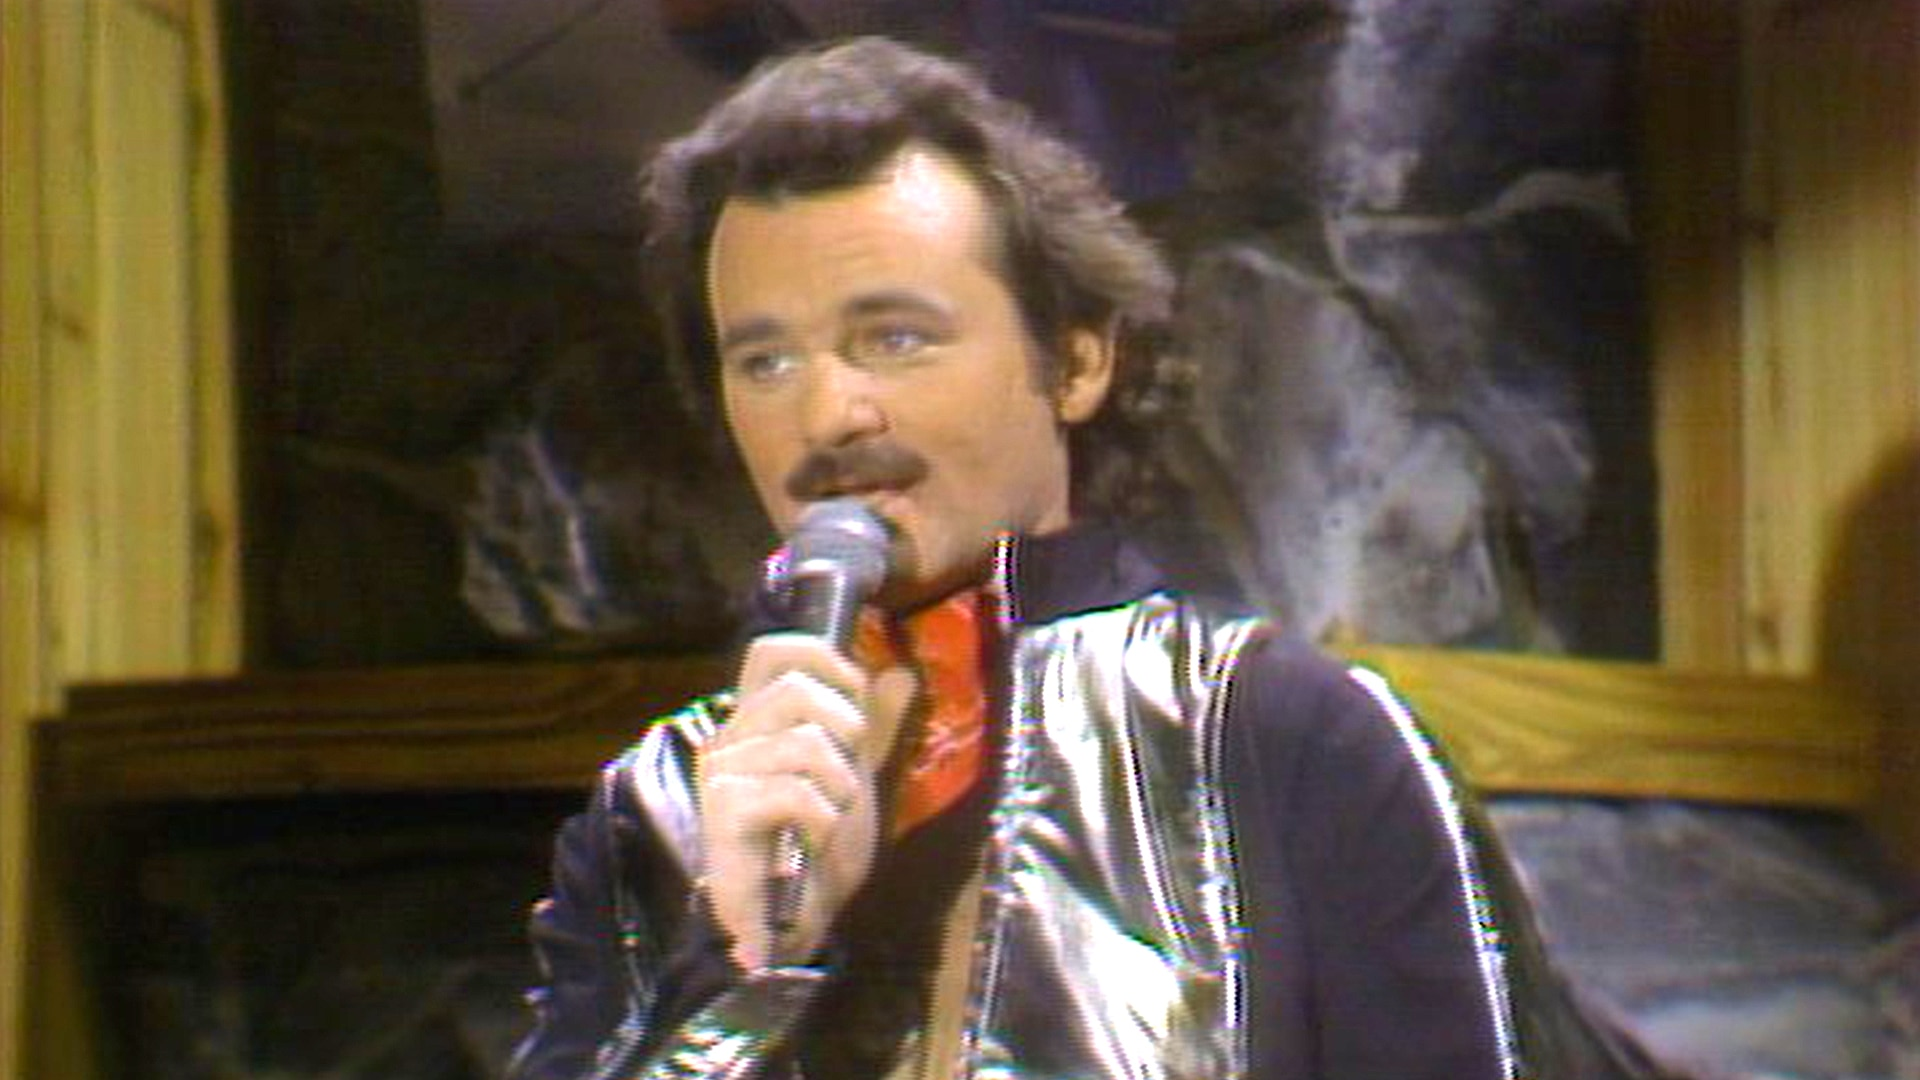 Bill Murray as the lounge singer Nick Winters from SNL Aww ...